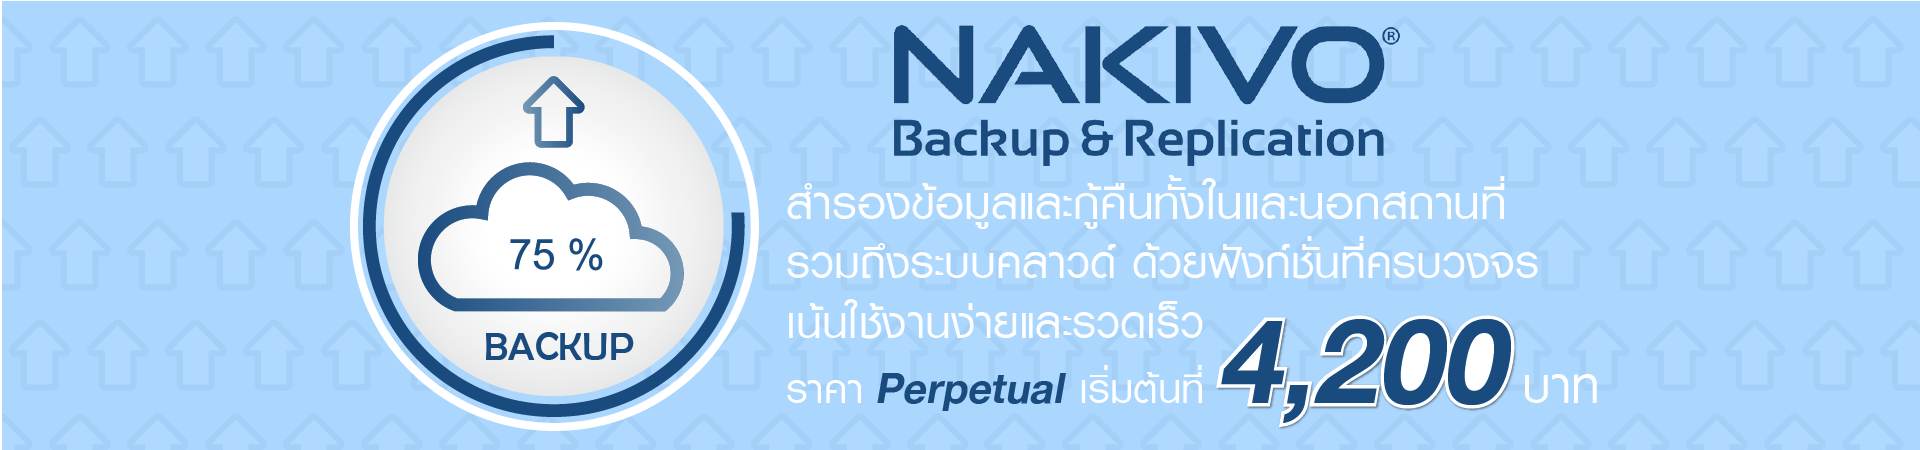 Nakivo backup&replication